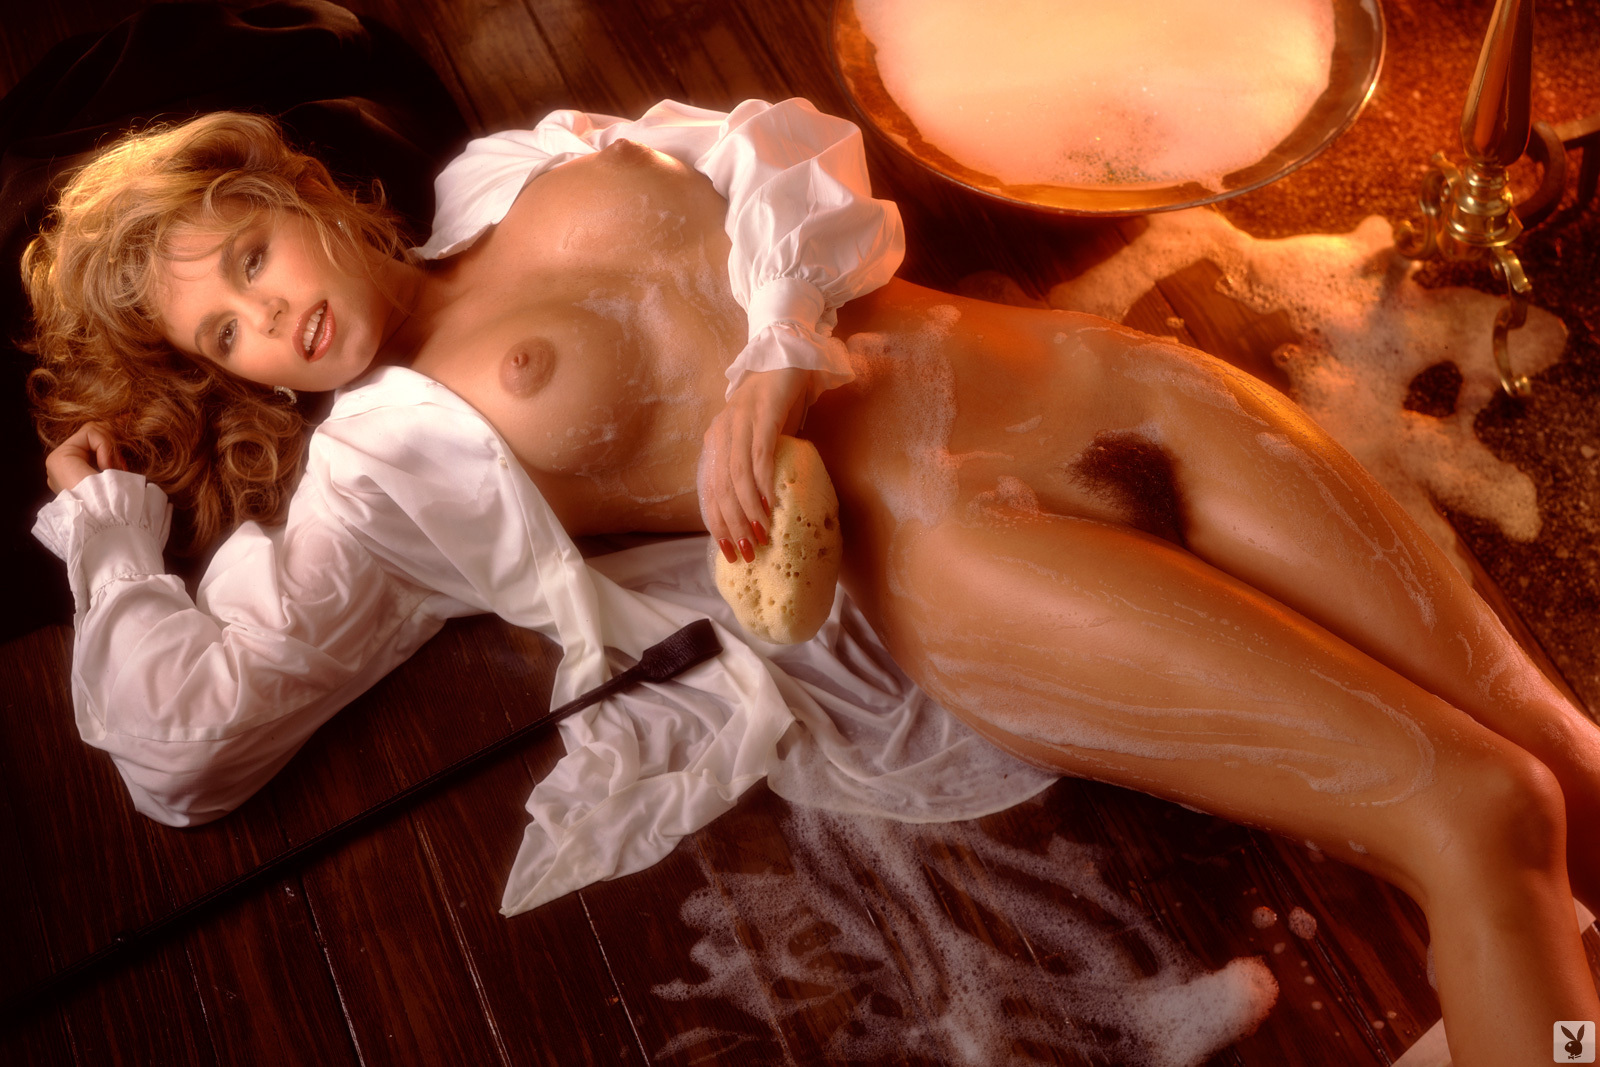 playmate review 1987 - features - special edition nudes | playboyplus